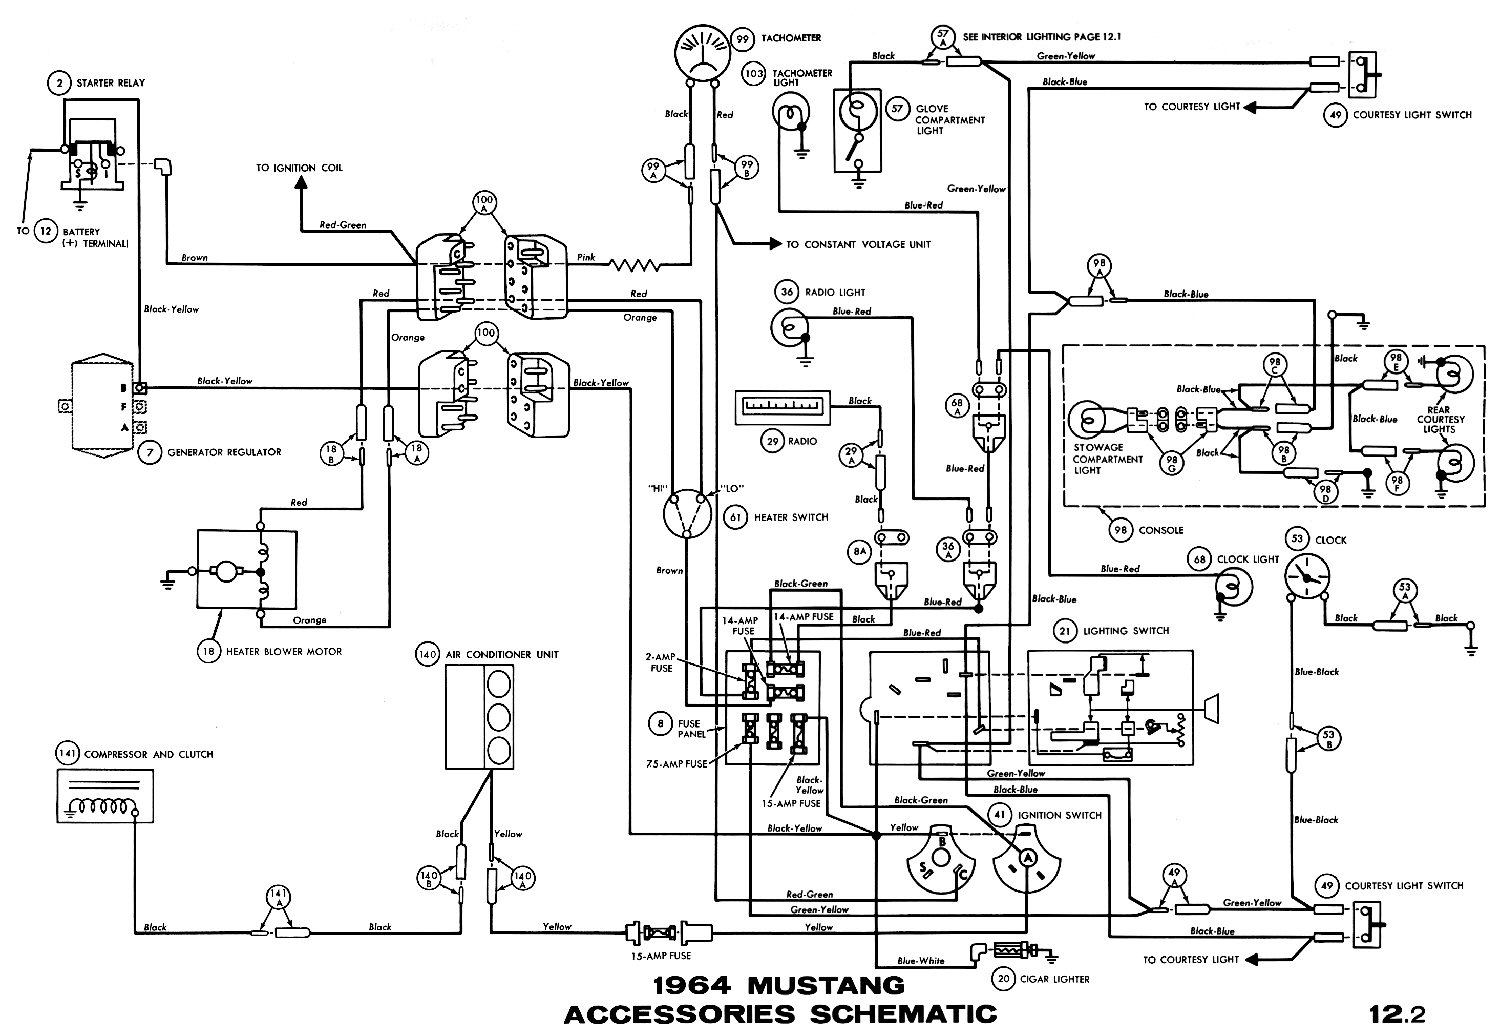 Peachy 1964 Mustang Wiring Diagrams Average Joe Restoration Wiring Digital Resources Remcakbiperorg